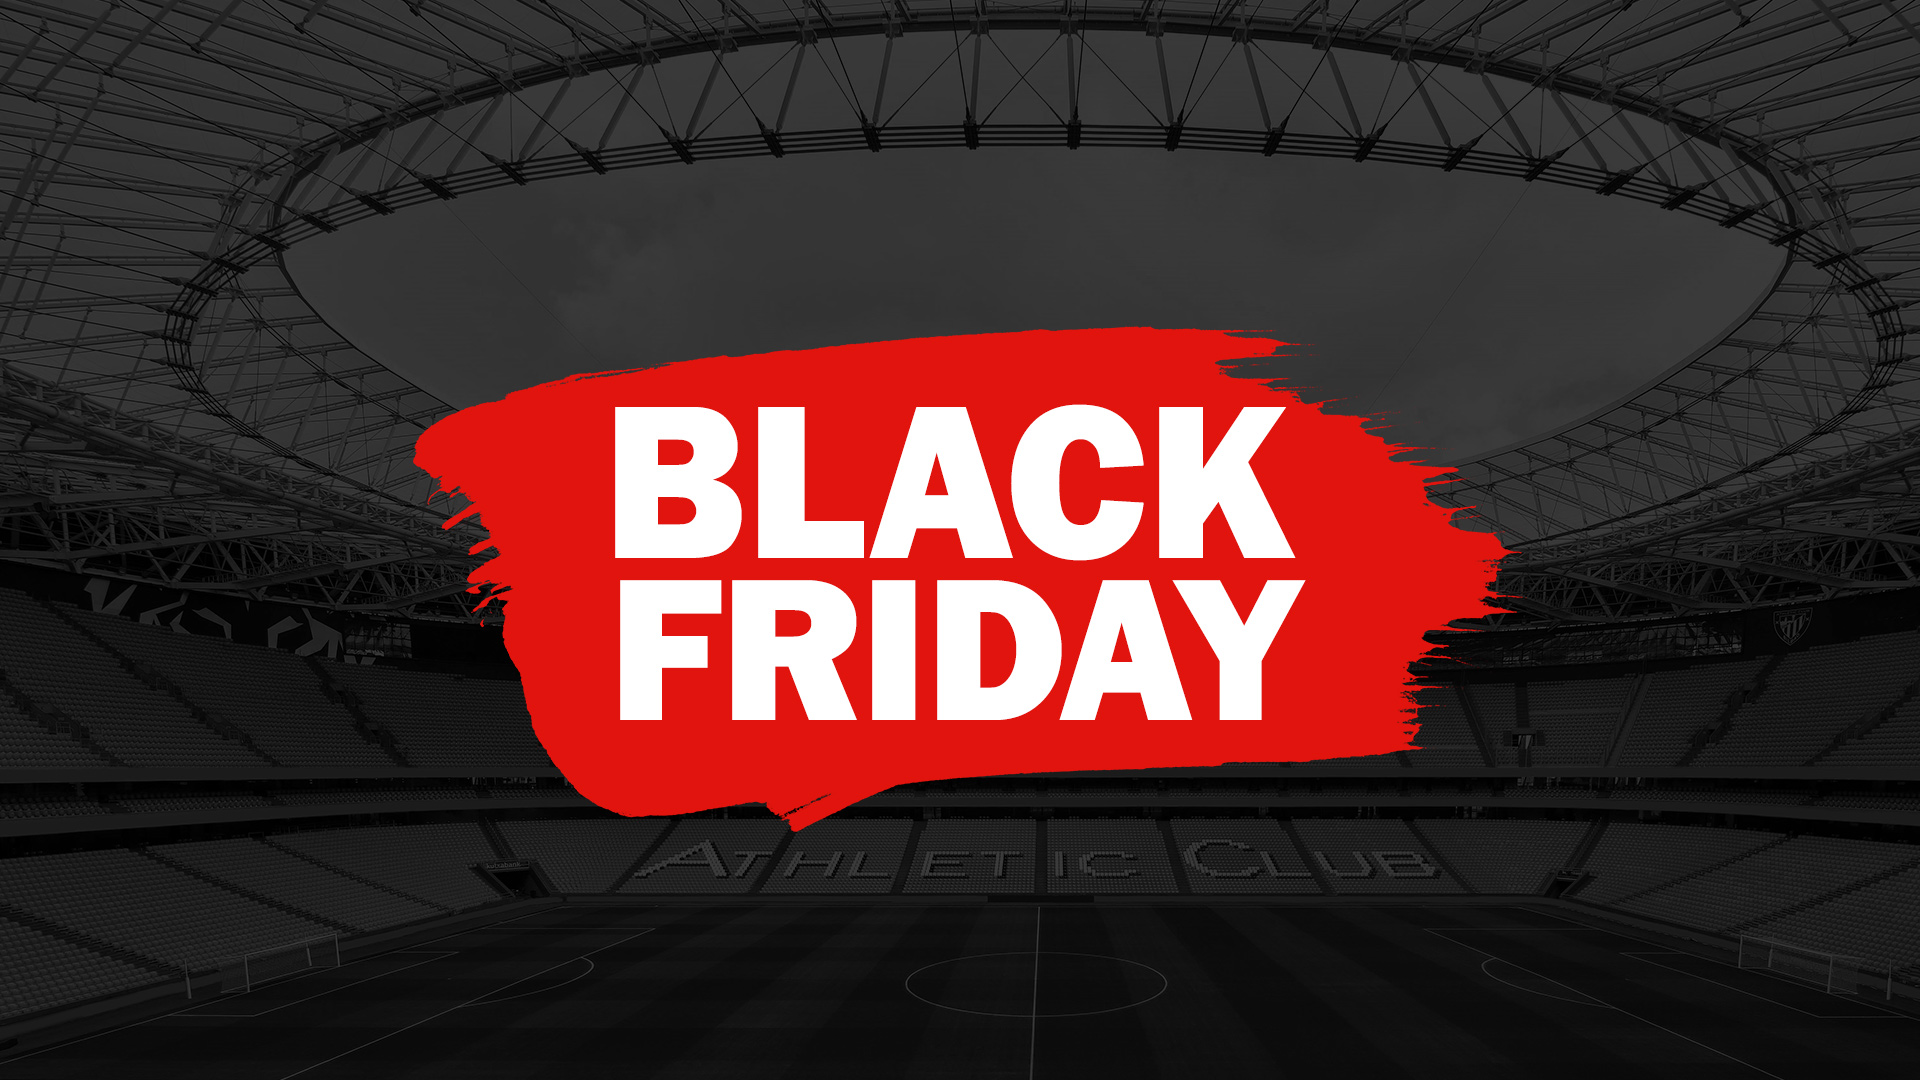 Semana Black Friday en las tiendas Athletic Club